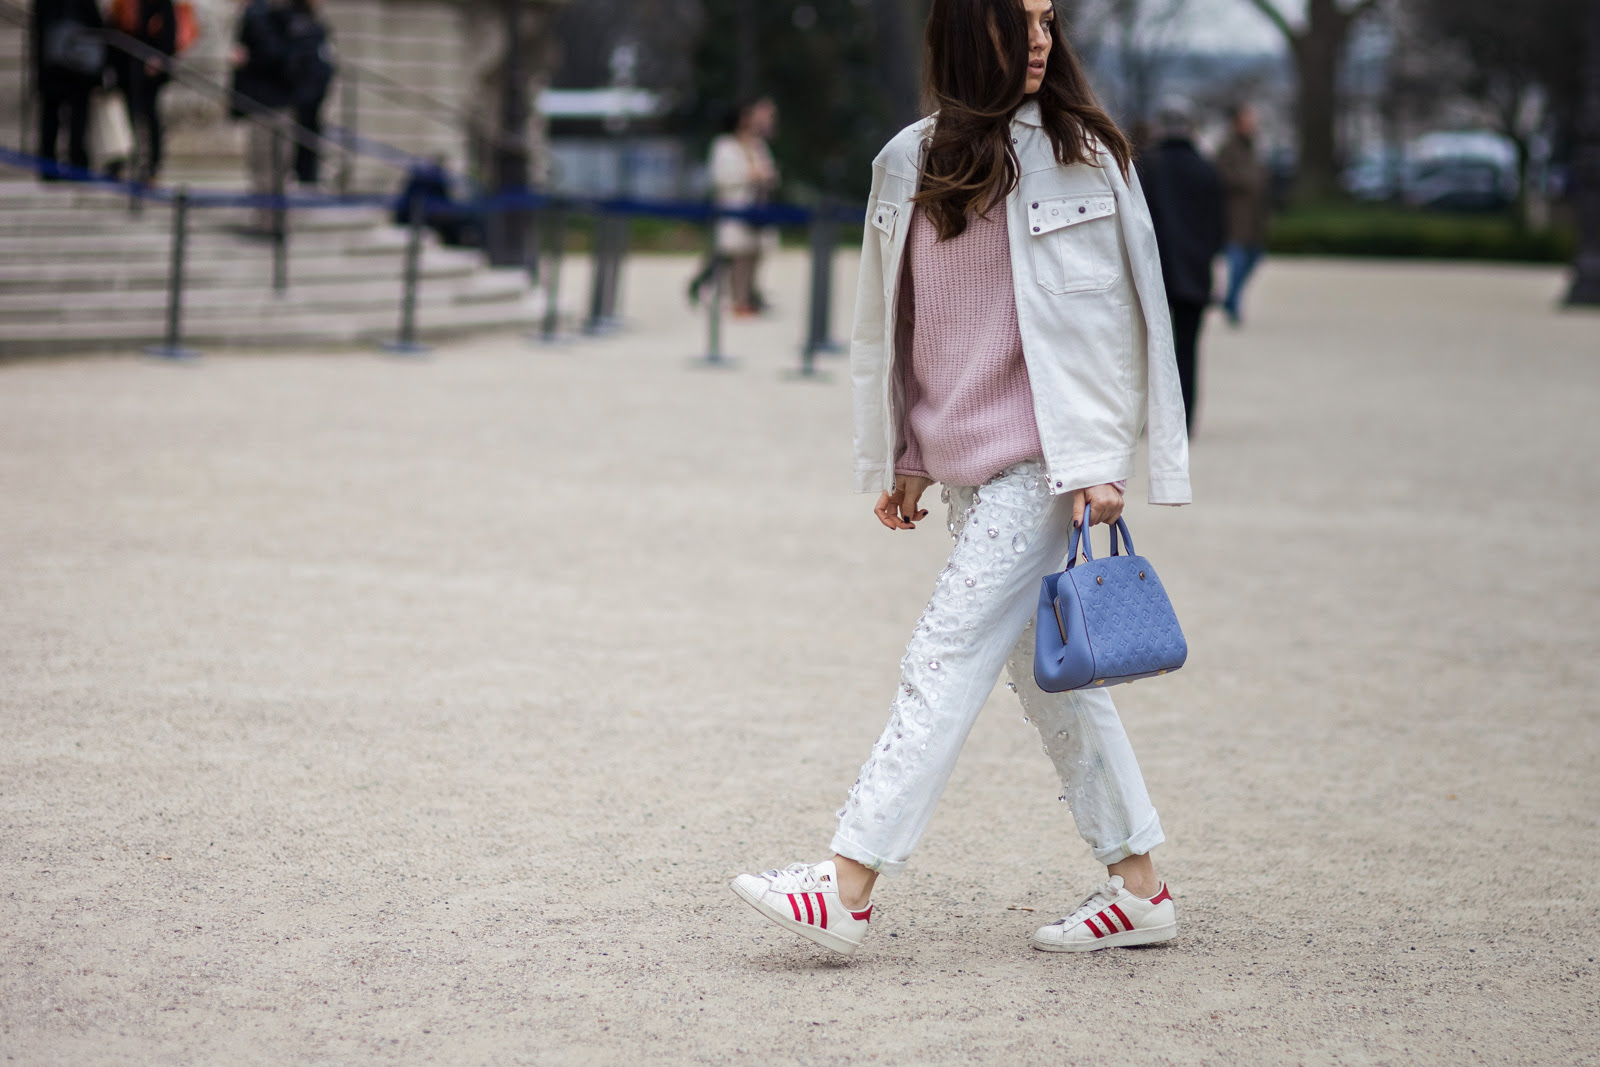 Erika Boldrin wearing Dondup embellished jeans, pink sweater, white denim jacket, Louis Vuitton bag and Adidas sneakers before the Chanel Fall/Winter 2015-2016 fashion show in Paris, France